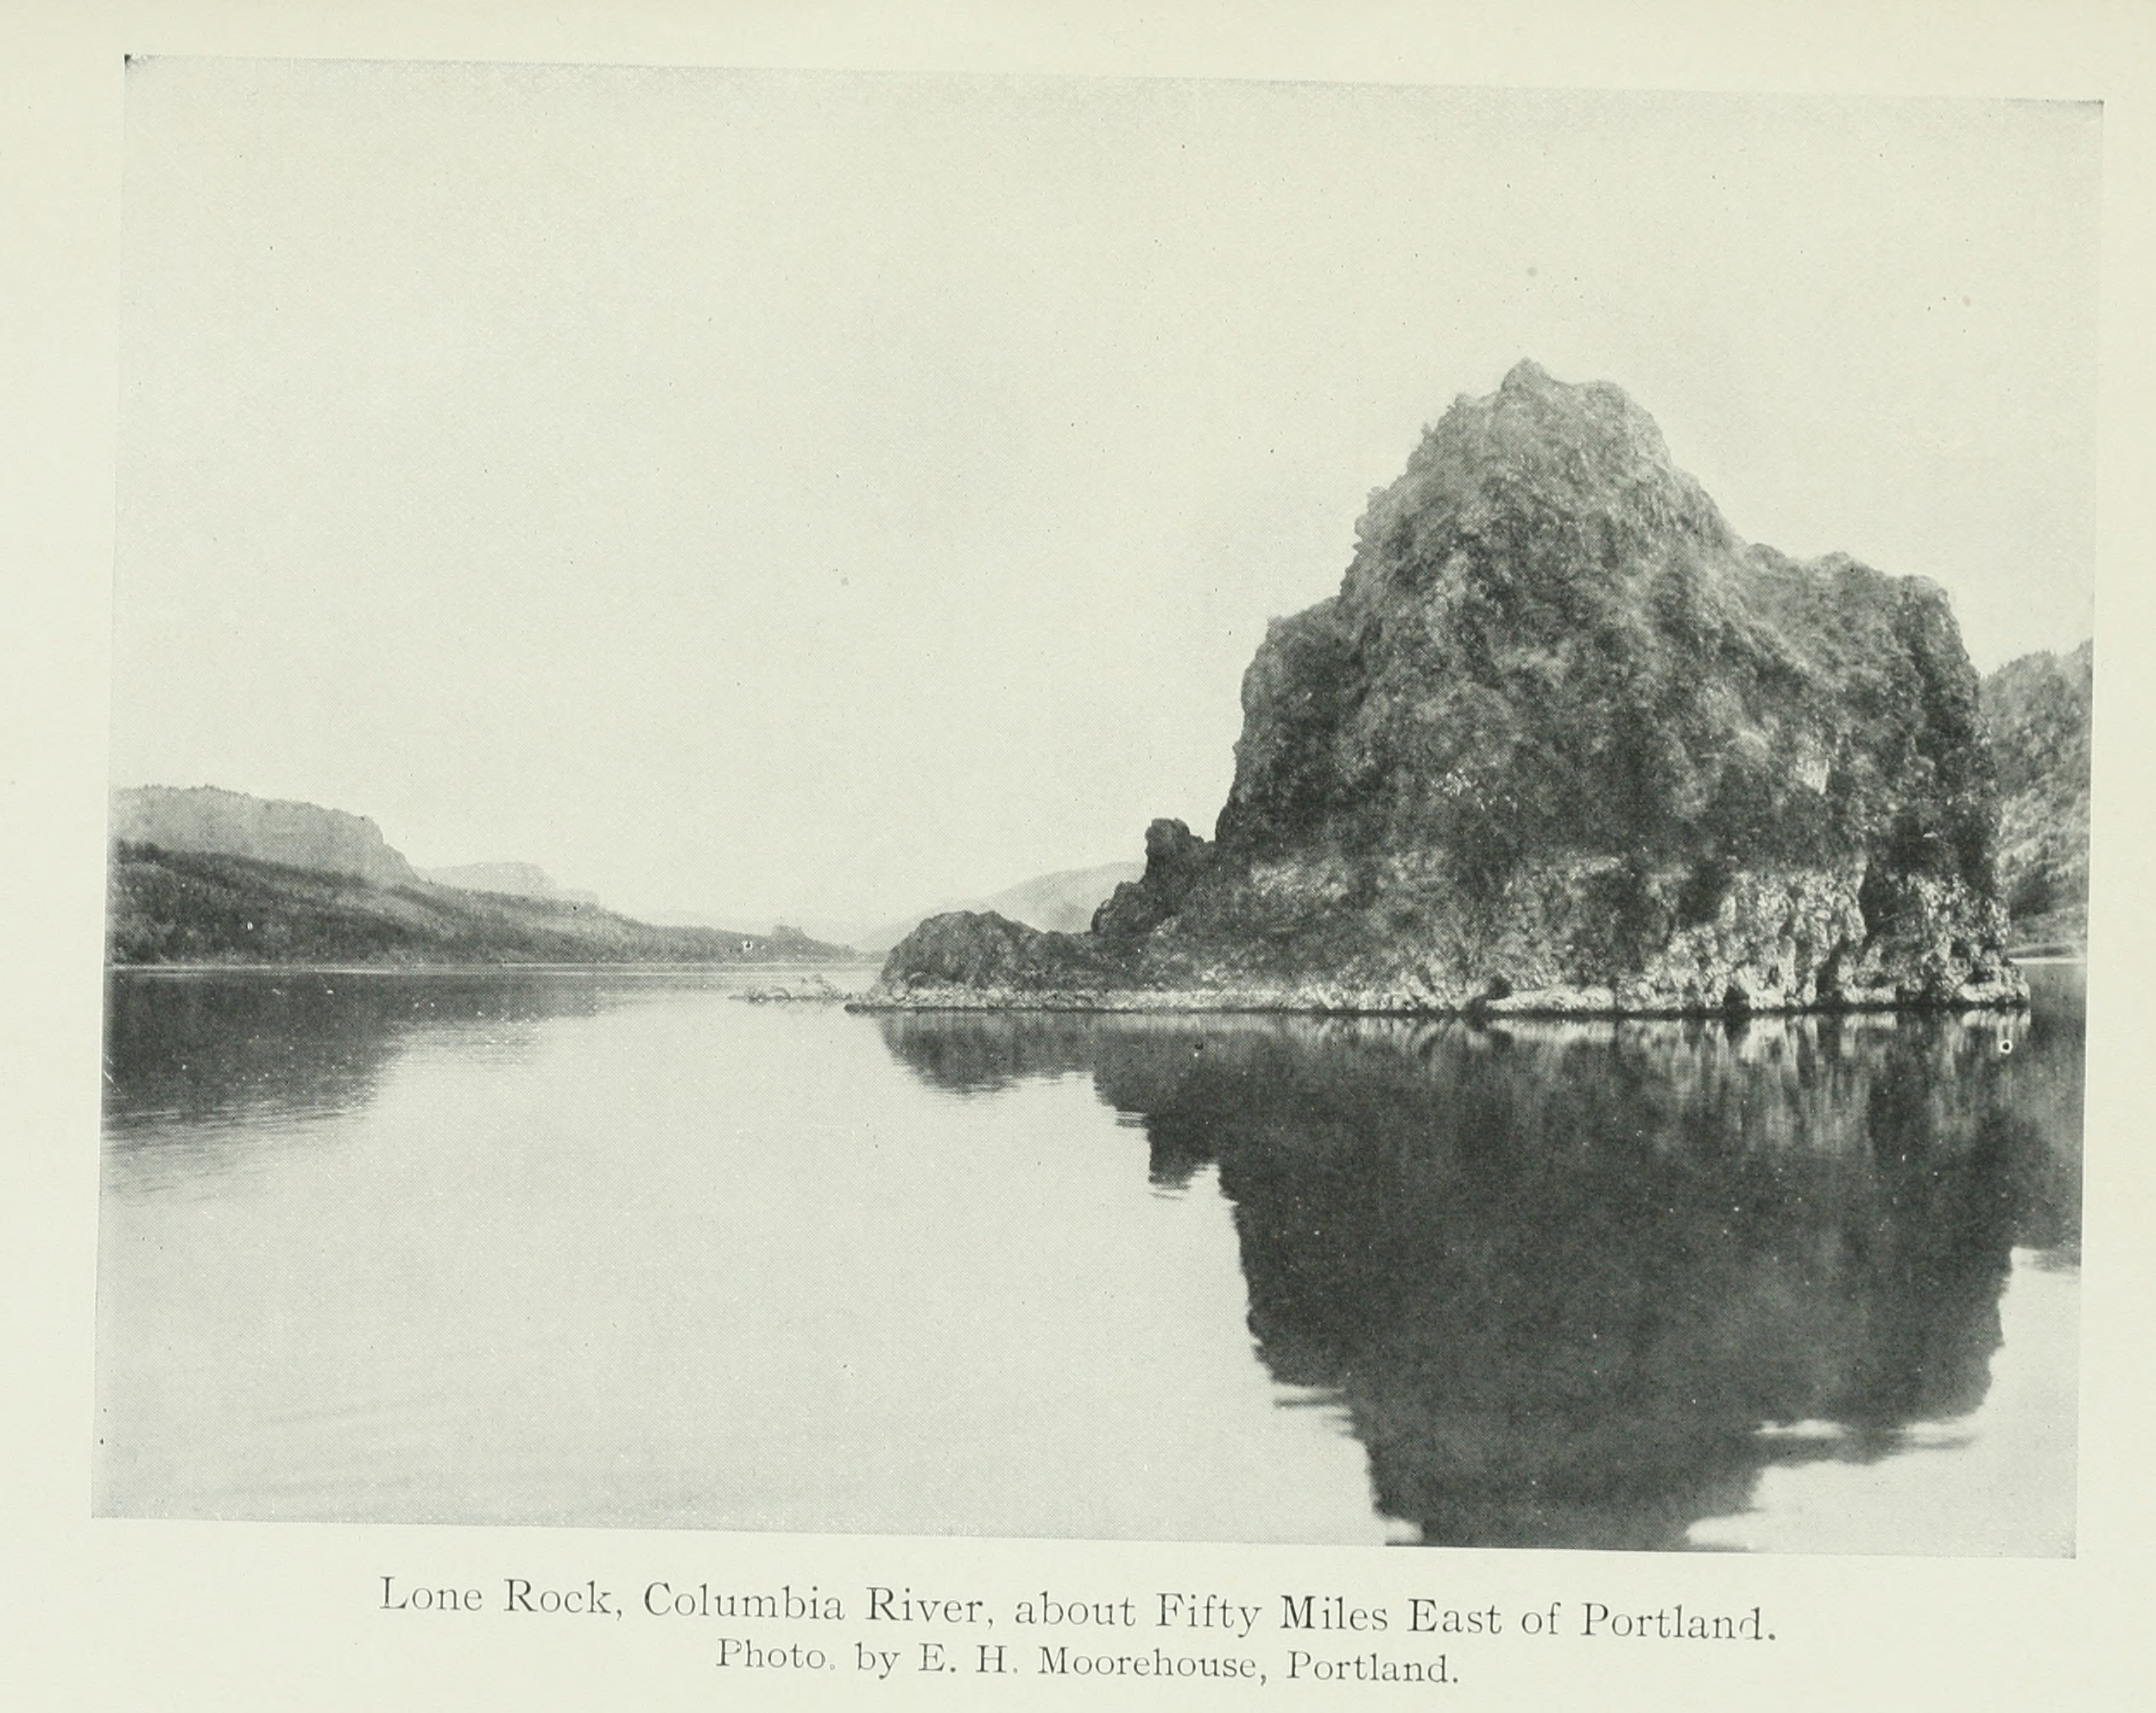 The Columbia River Its History, Its Myths, Its Scenery, Its Commerce p 541.png